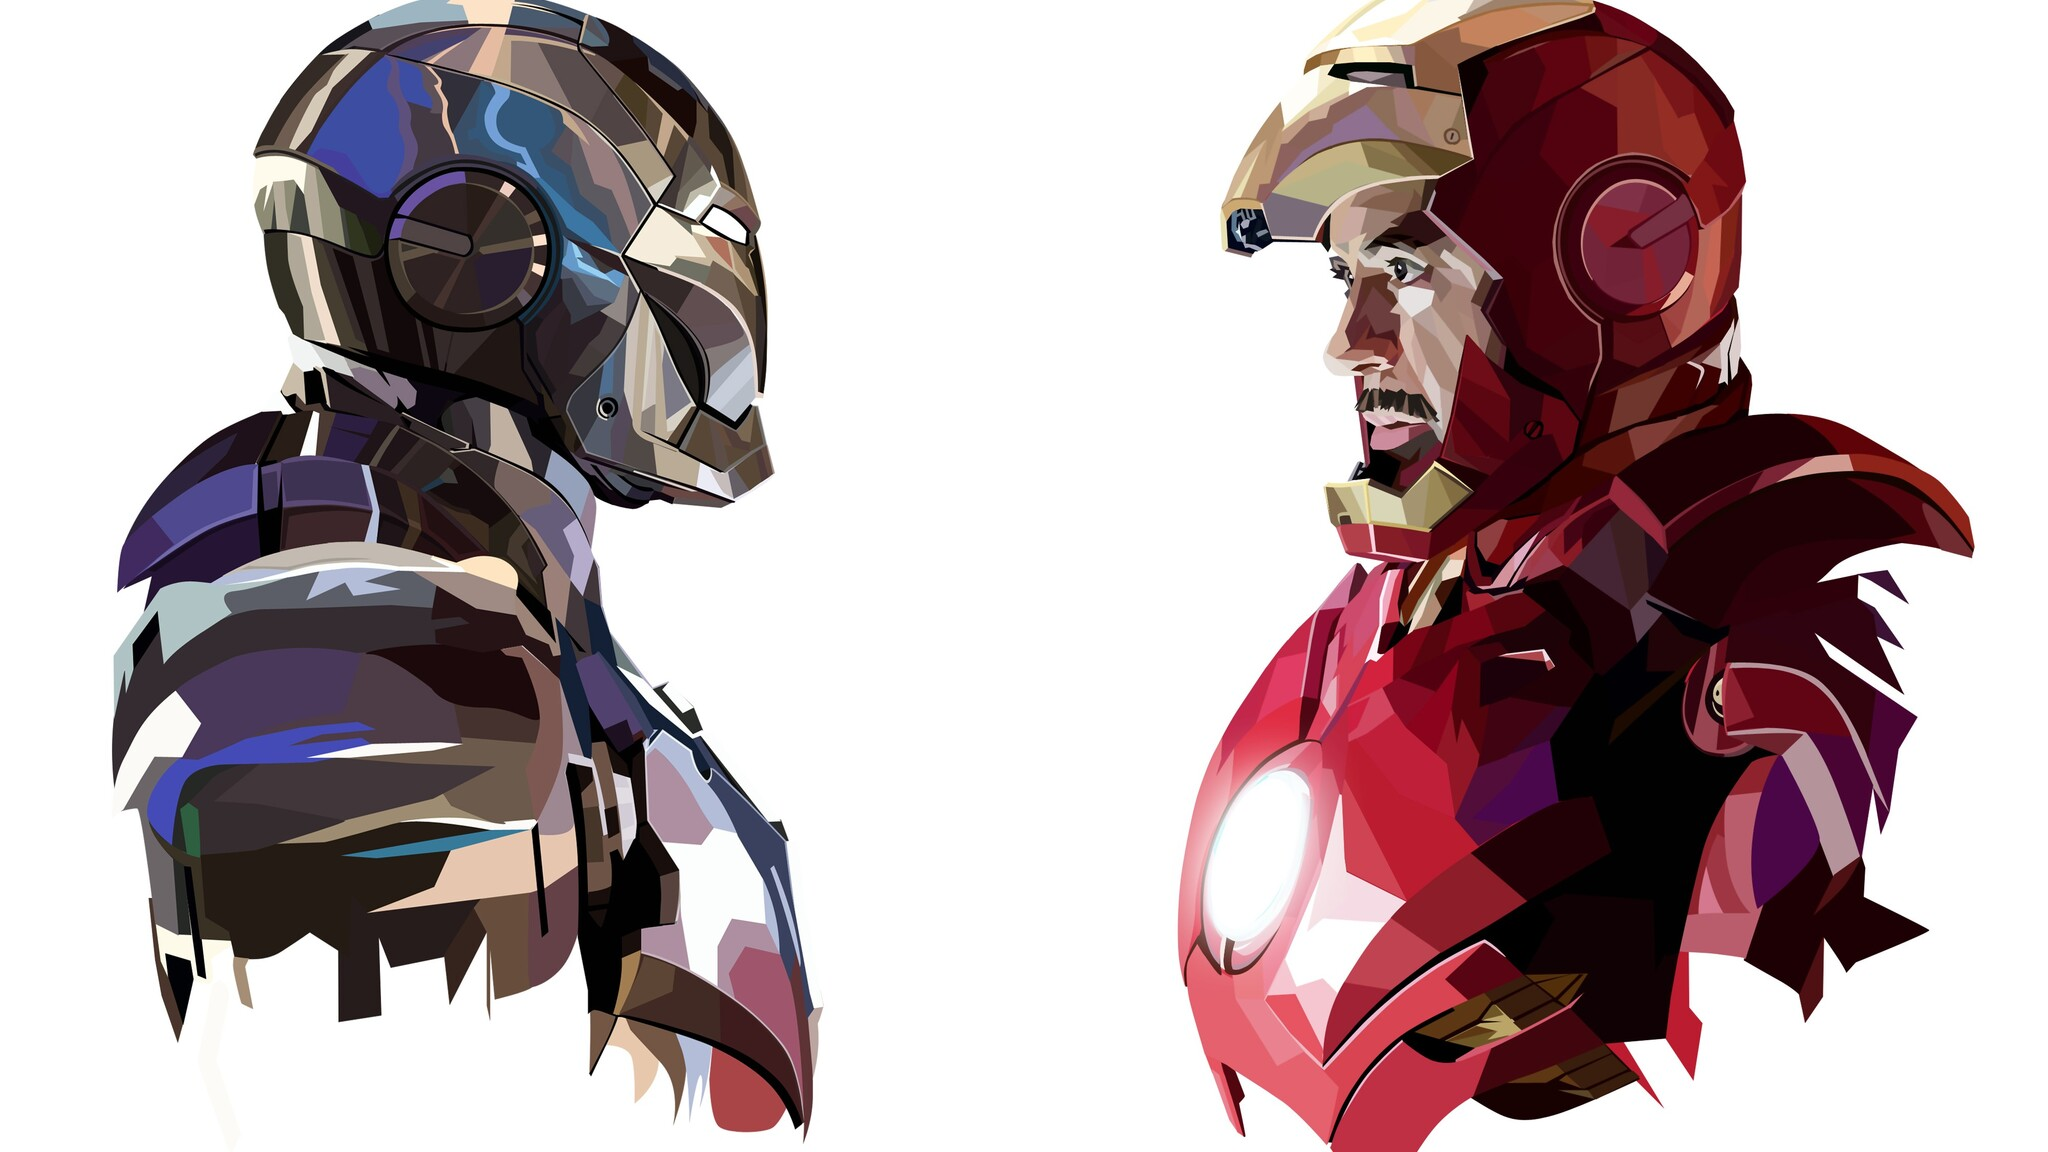 2048x1152 Tony Stark Iron Man Art 2048x1152 Resolution HD